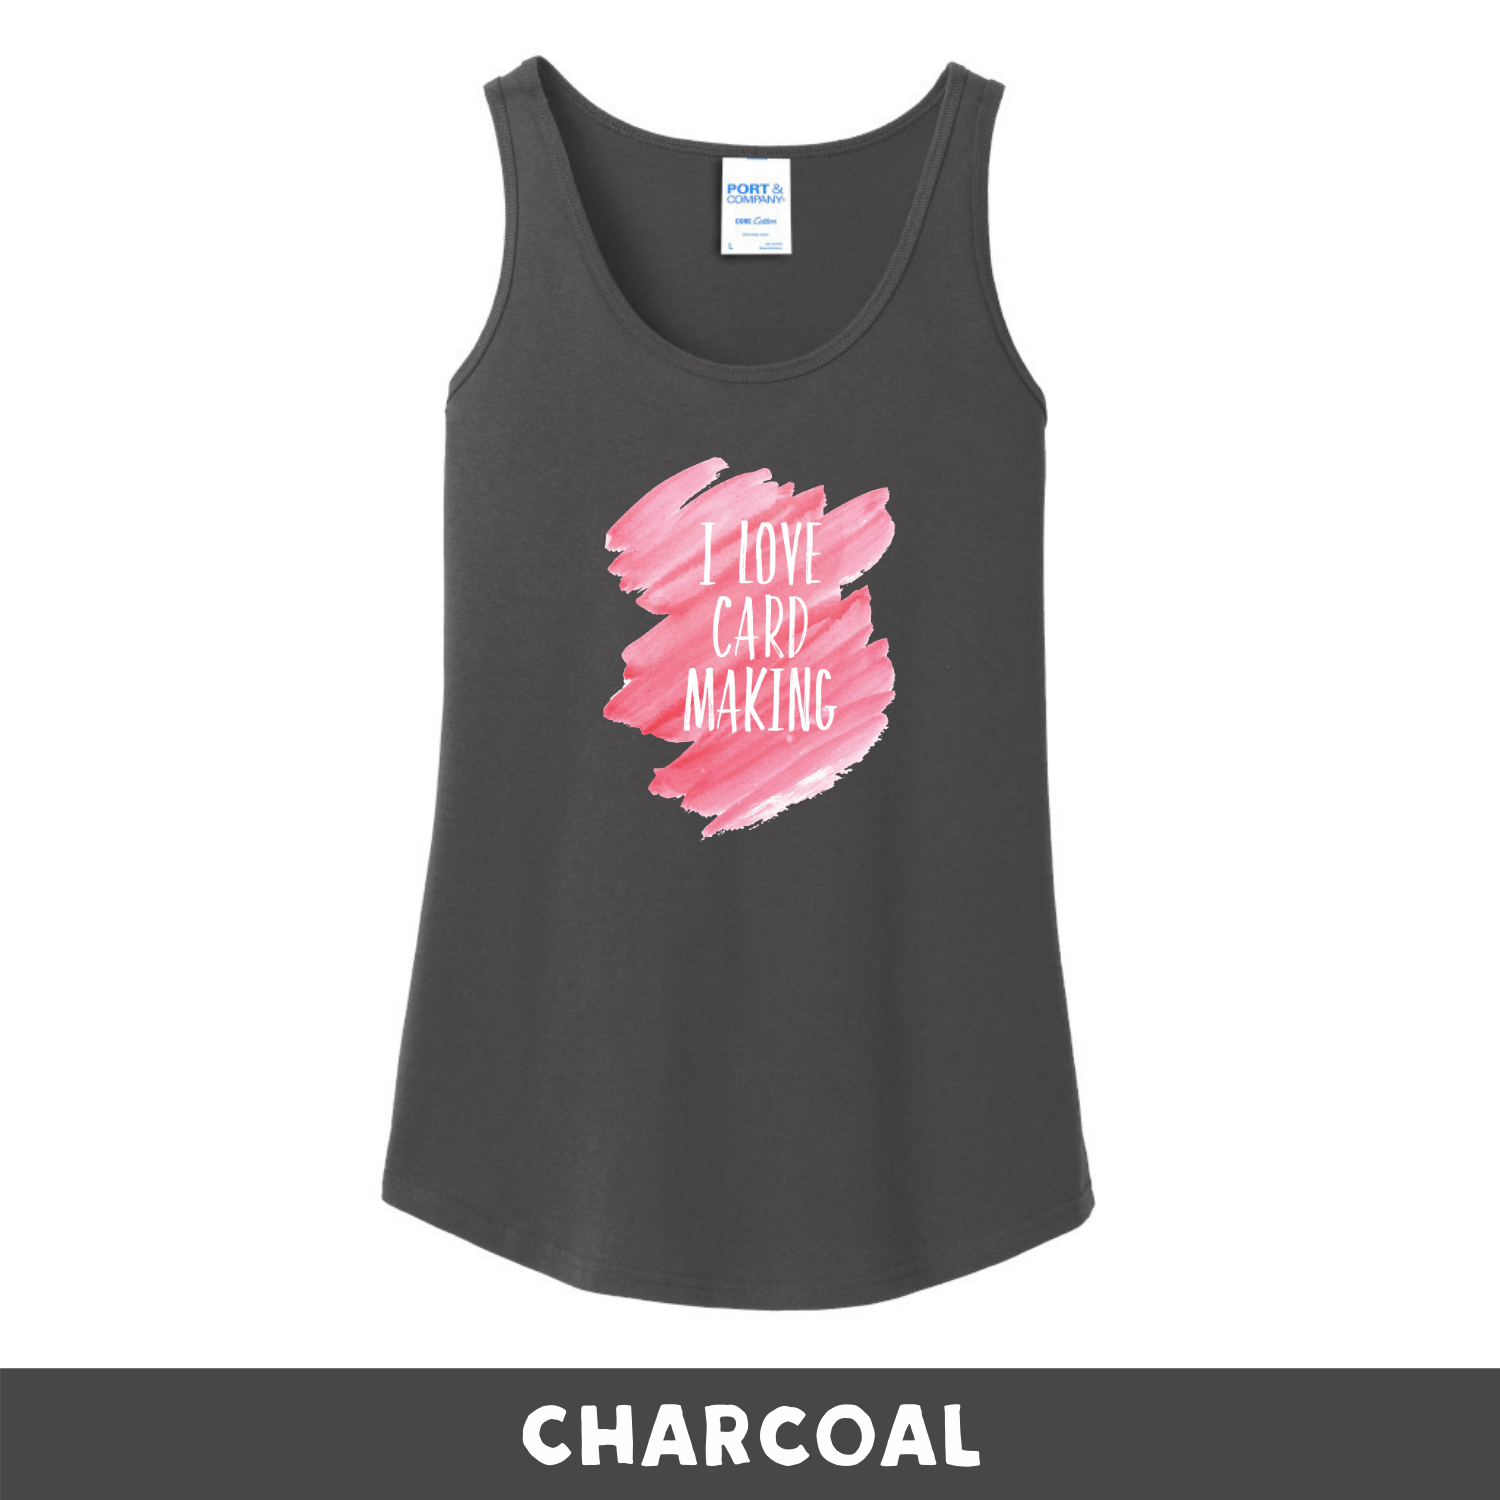 Charcoal - Woman's Cut Tank Top - I Love Cardmaking